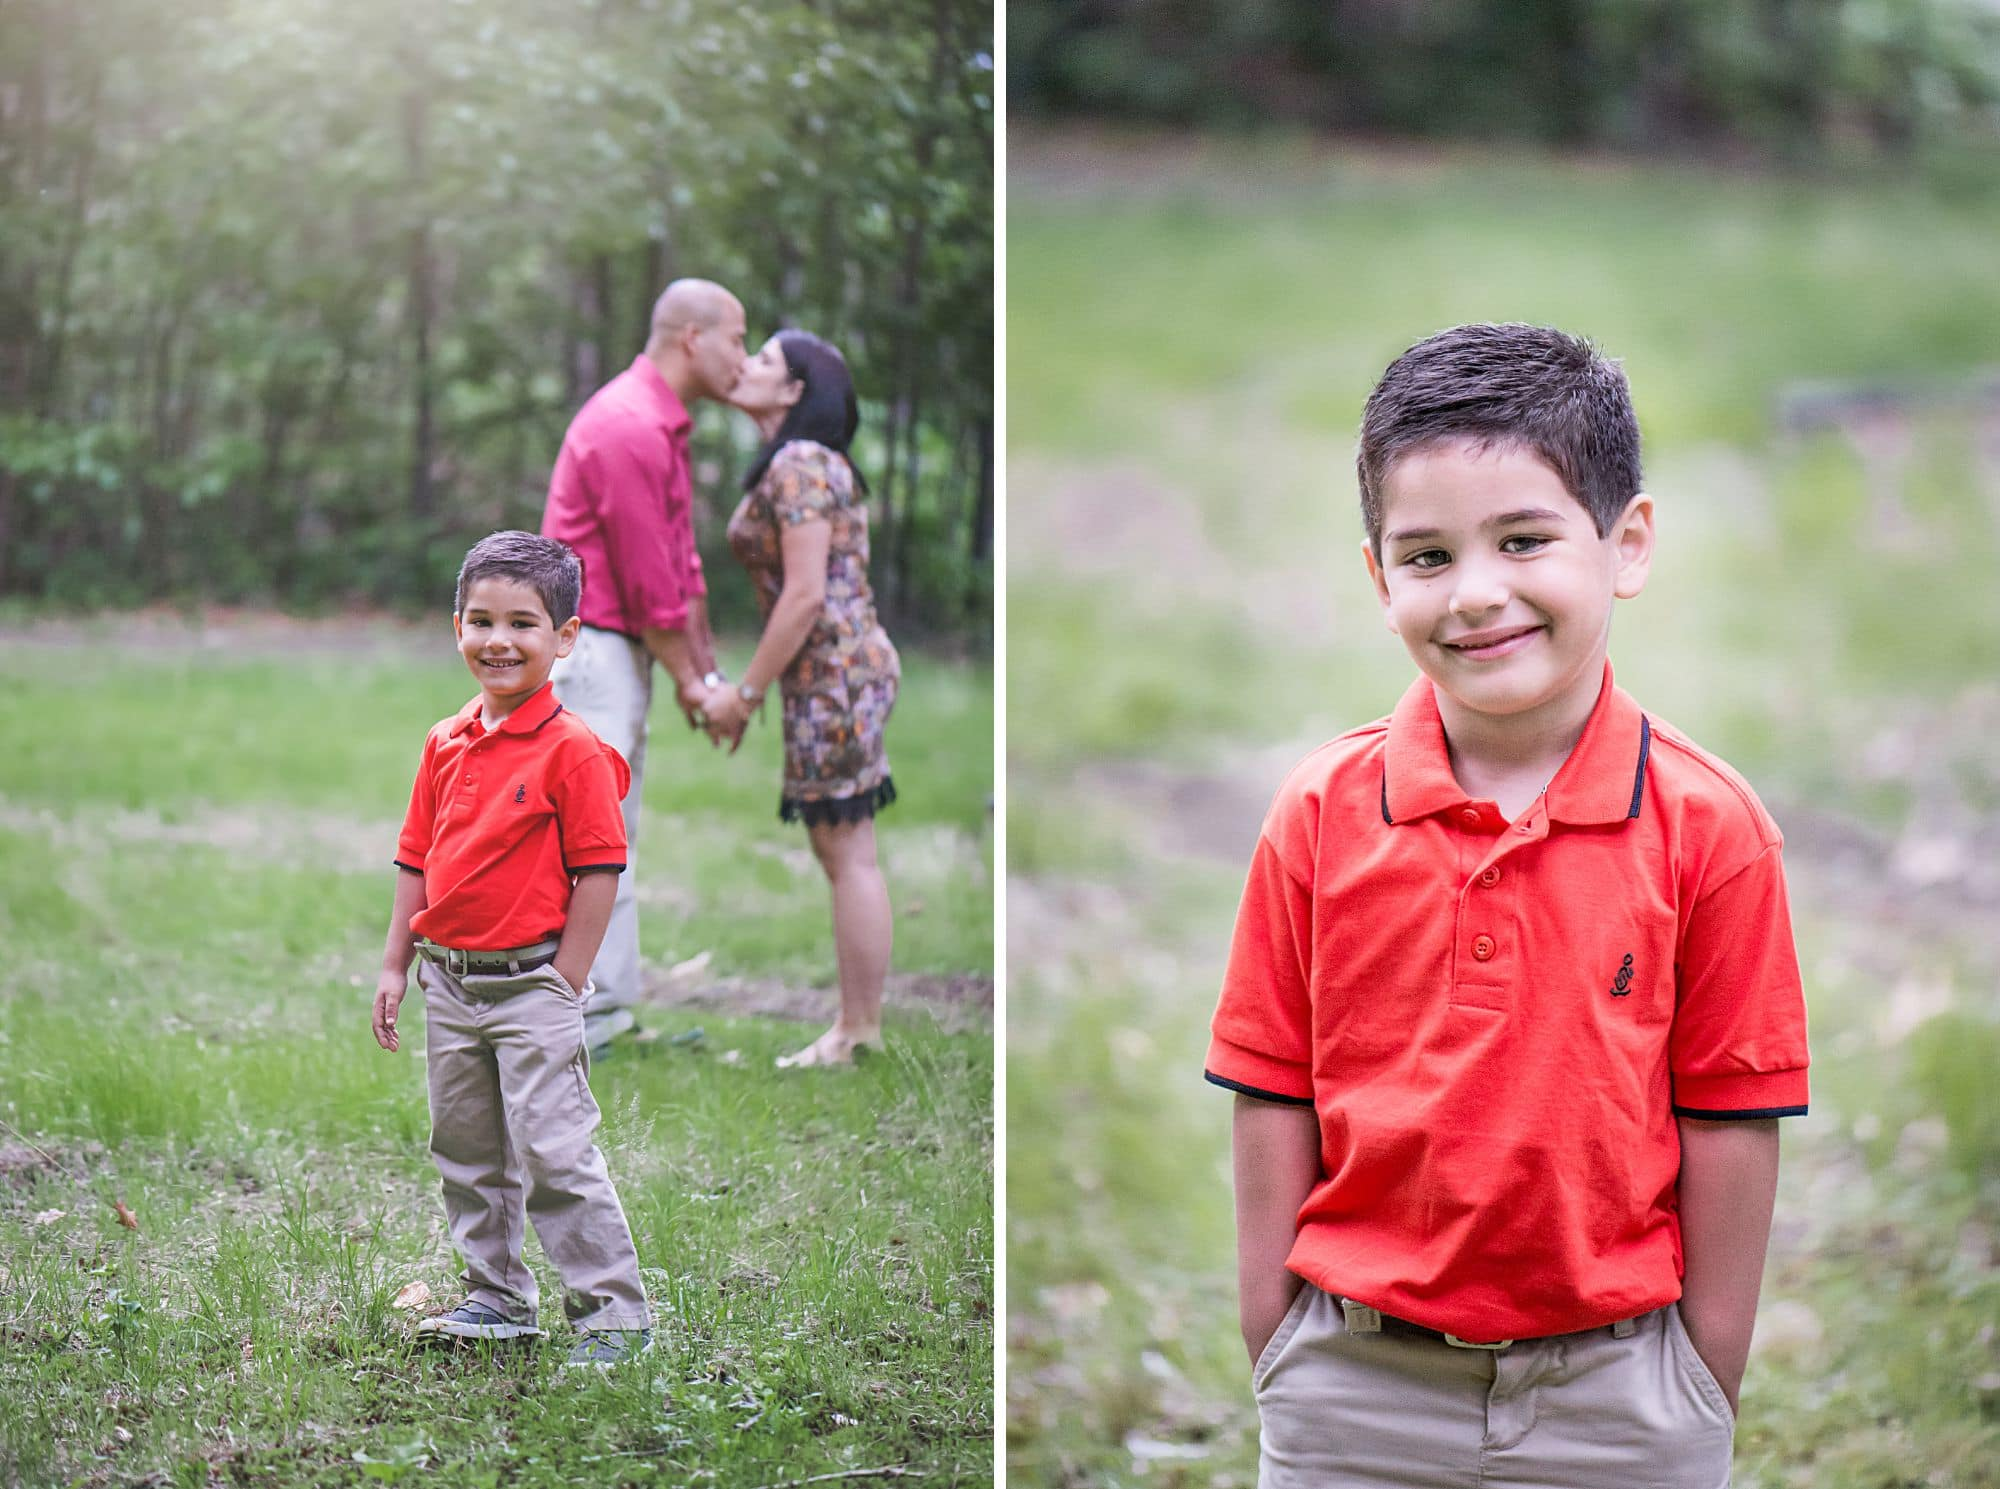 Outdoor family photos, boy in orange shirt with parents kissing in the background